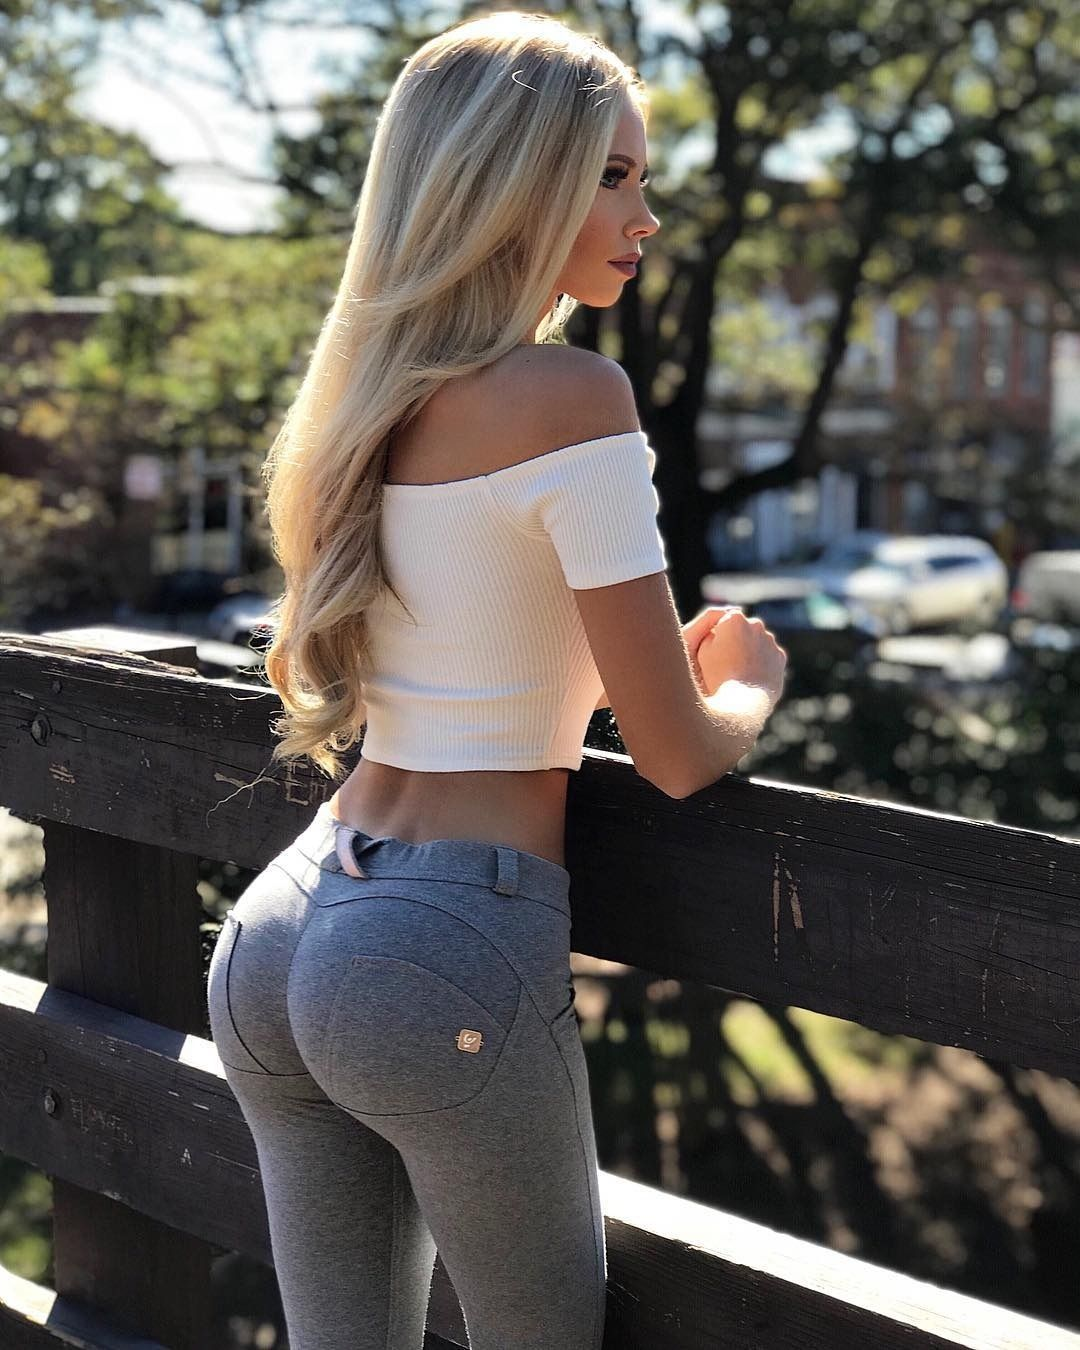 Blond Woman In White T Shirt Trying To Dress Her Tight Jeans Stock Image